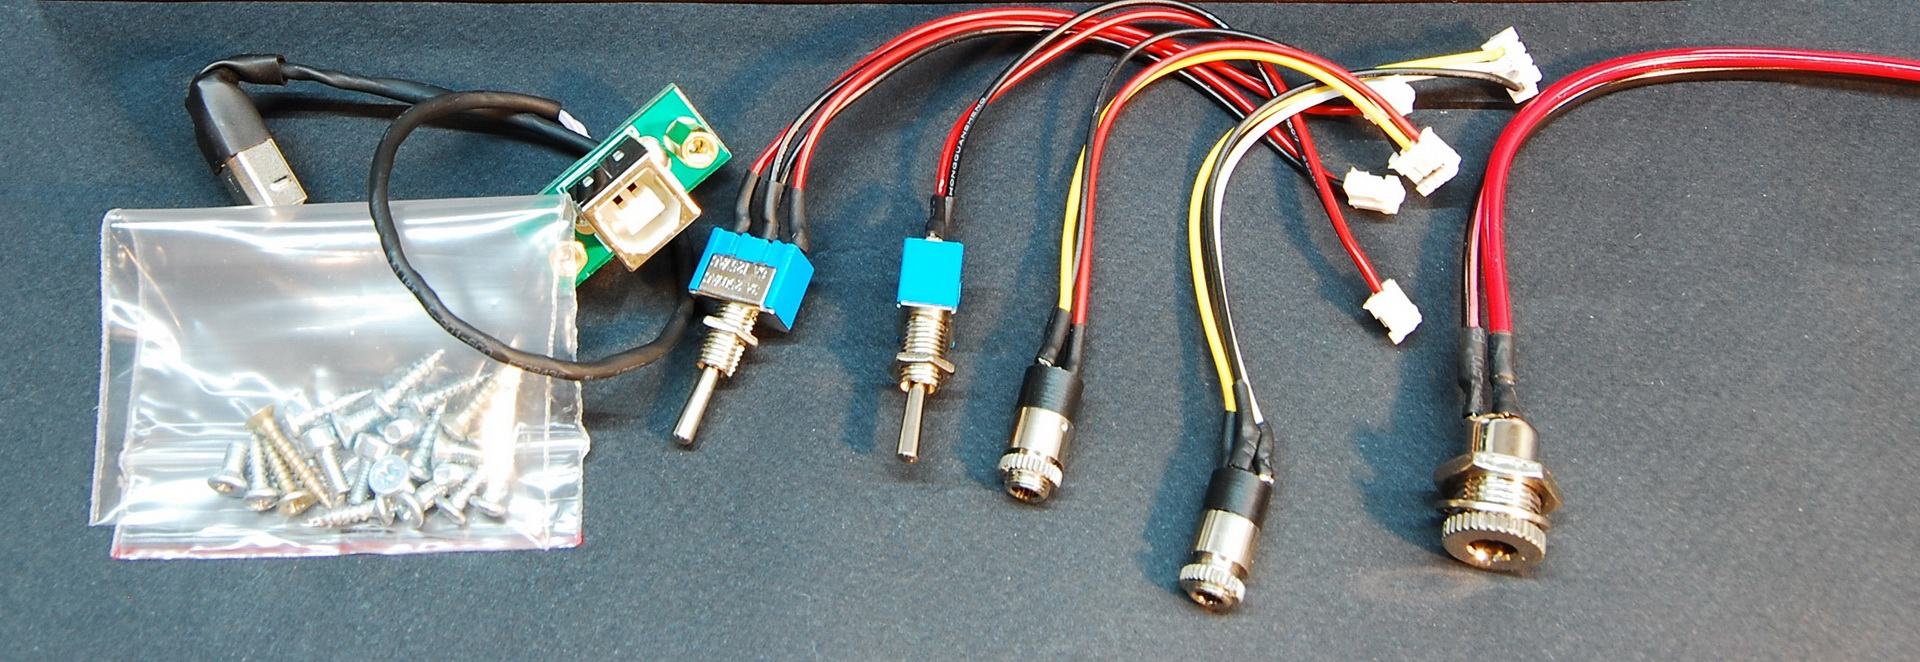 ZM1042 tubes Set of buttons and connectors for Big Wooden Case on IN-18 Z566